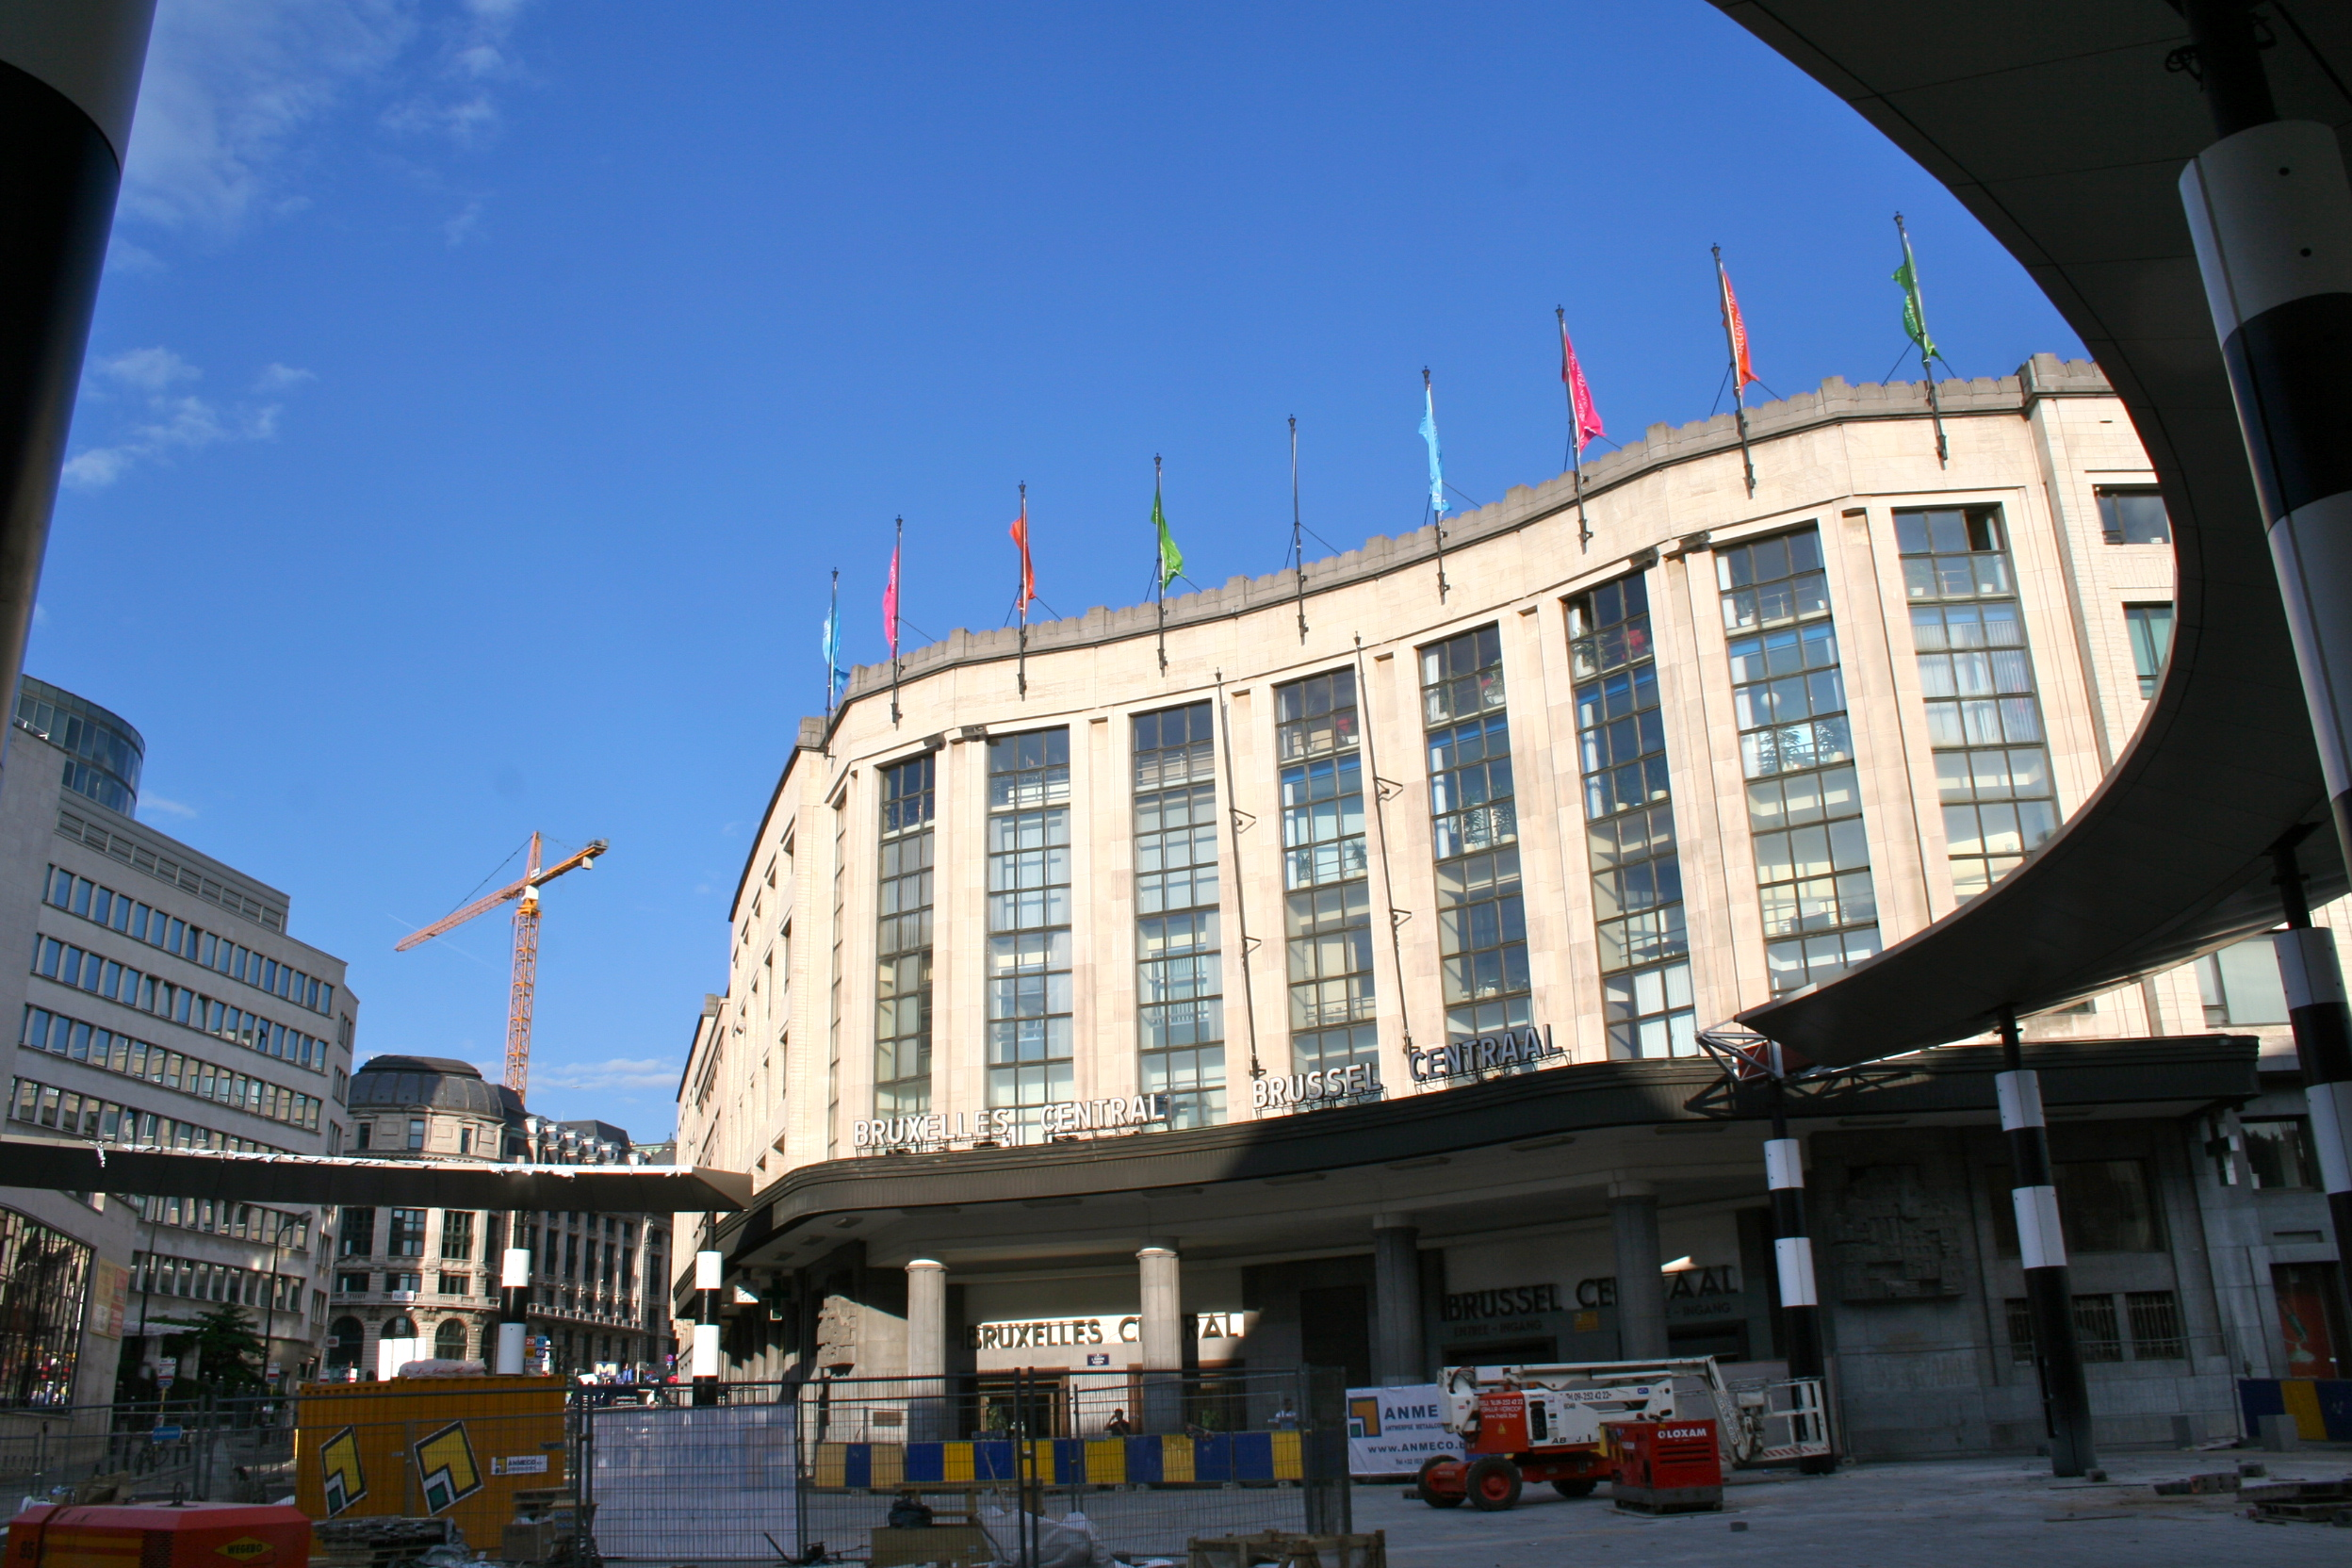 Brussels central renovations 2010.jpg English: Outside Brussels Central Station, summer 2010, toward the end of the renovations of the square. It was